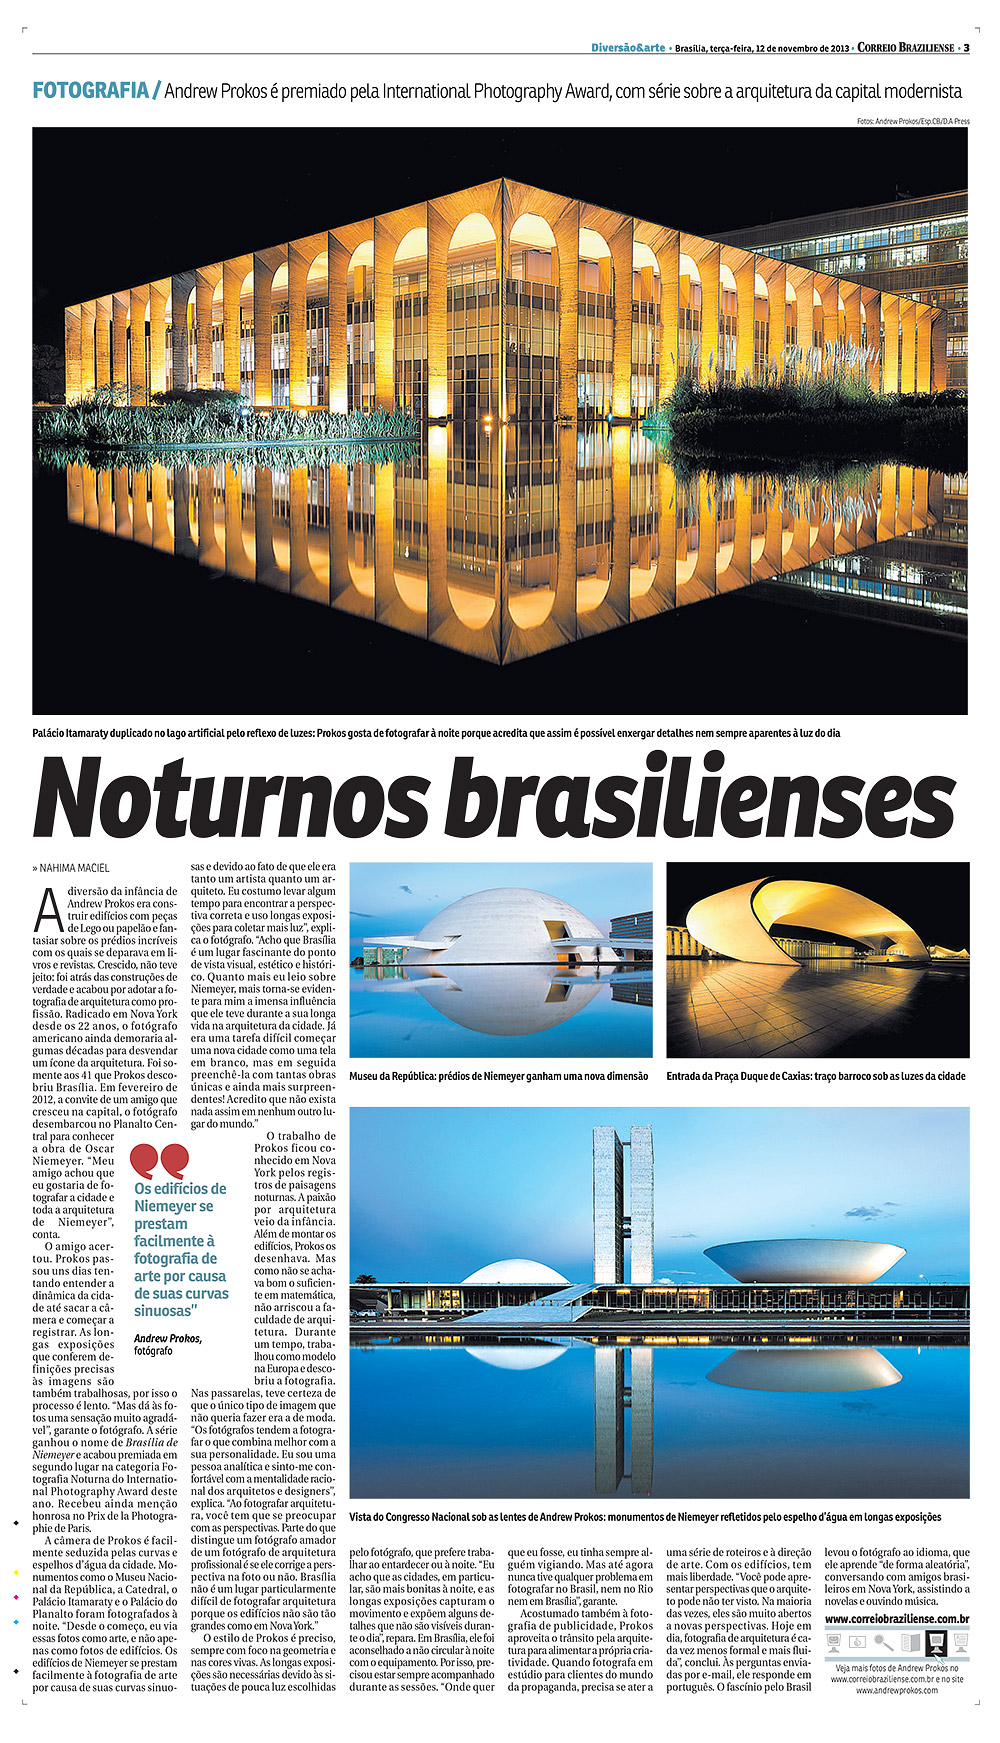 correio braziliense newspaper article